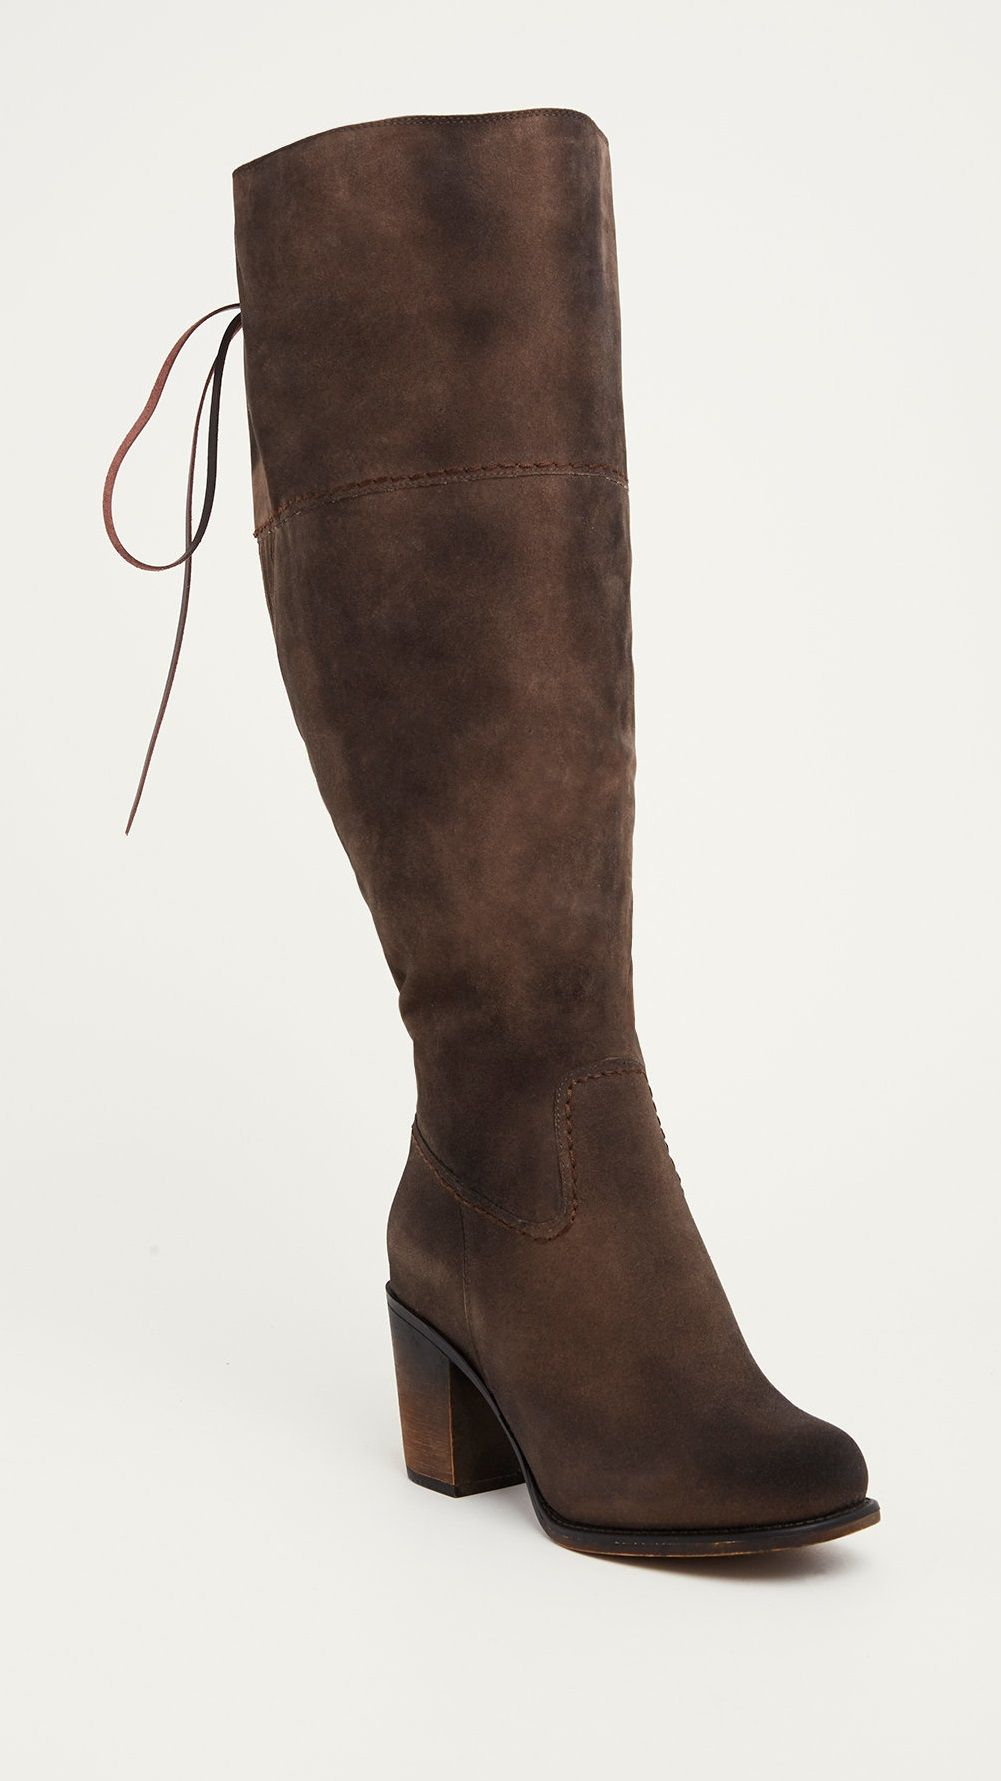 e53afde941b Plus Size Wide Calf Over-the-Knee Boots  widecalf